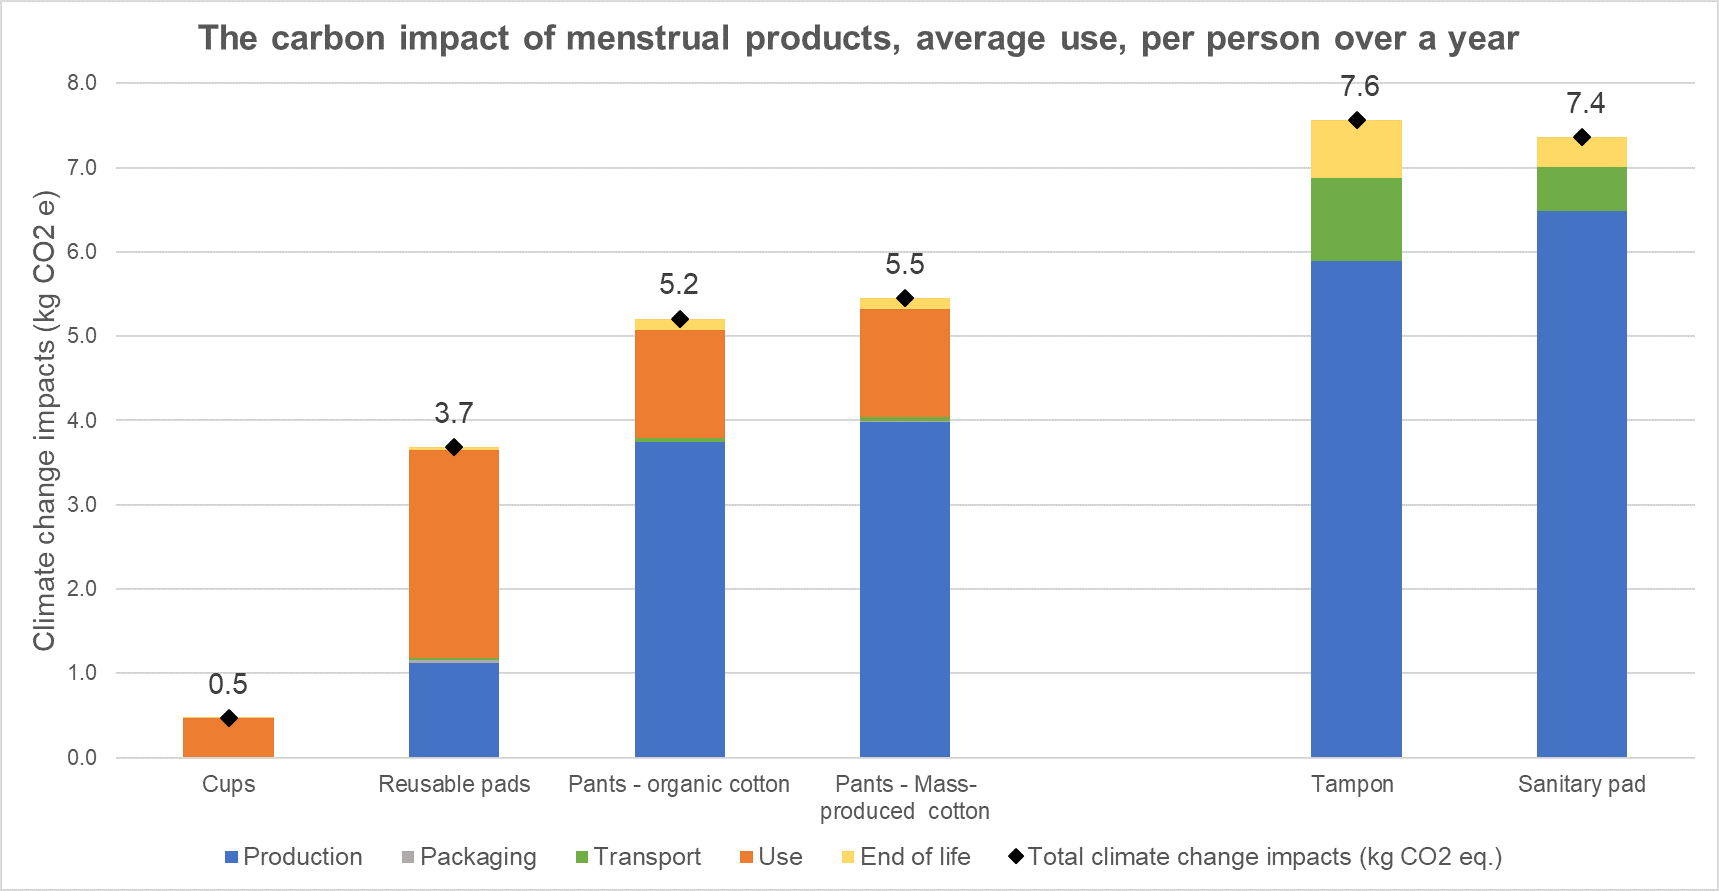 Carbon impacts of menstrual products graph